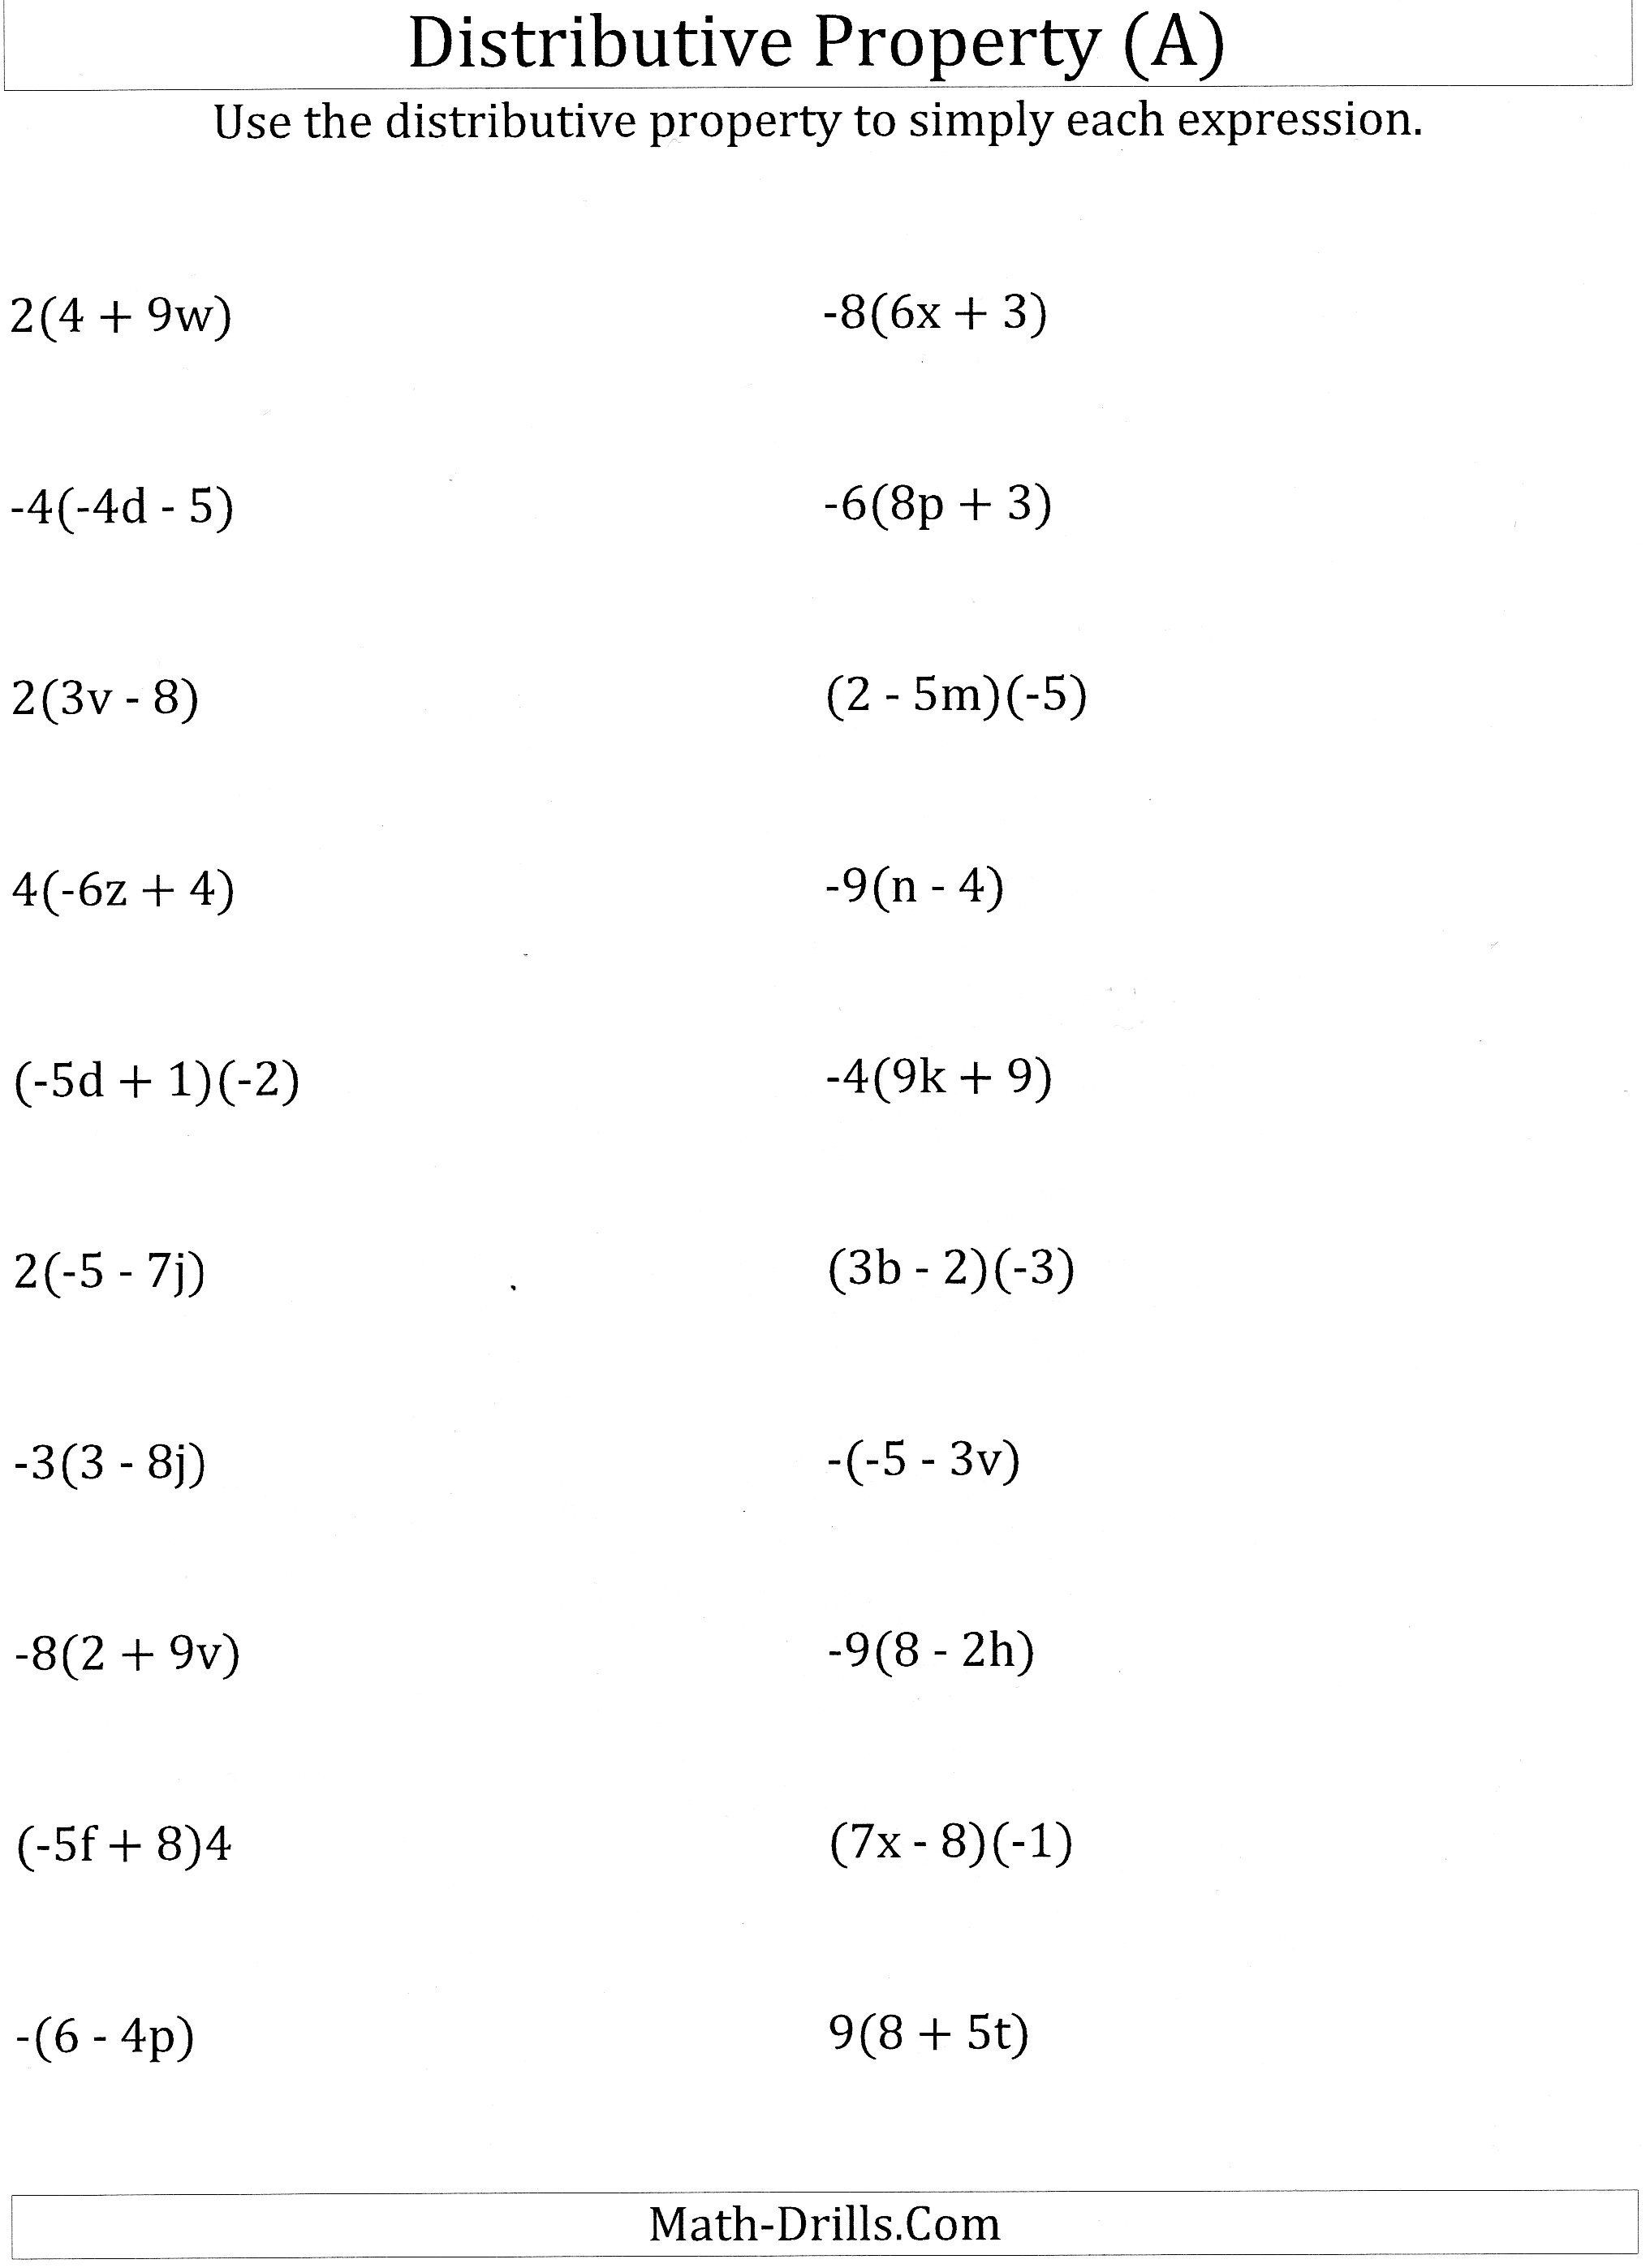 Distributive Property Worksheets 9th Grade Worksheet Math Worksheets Distributive Property